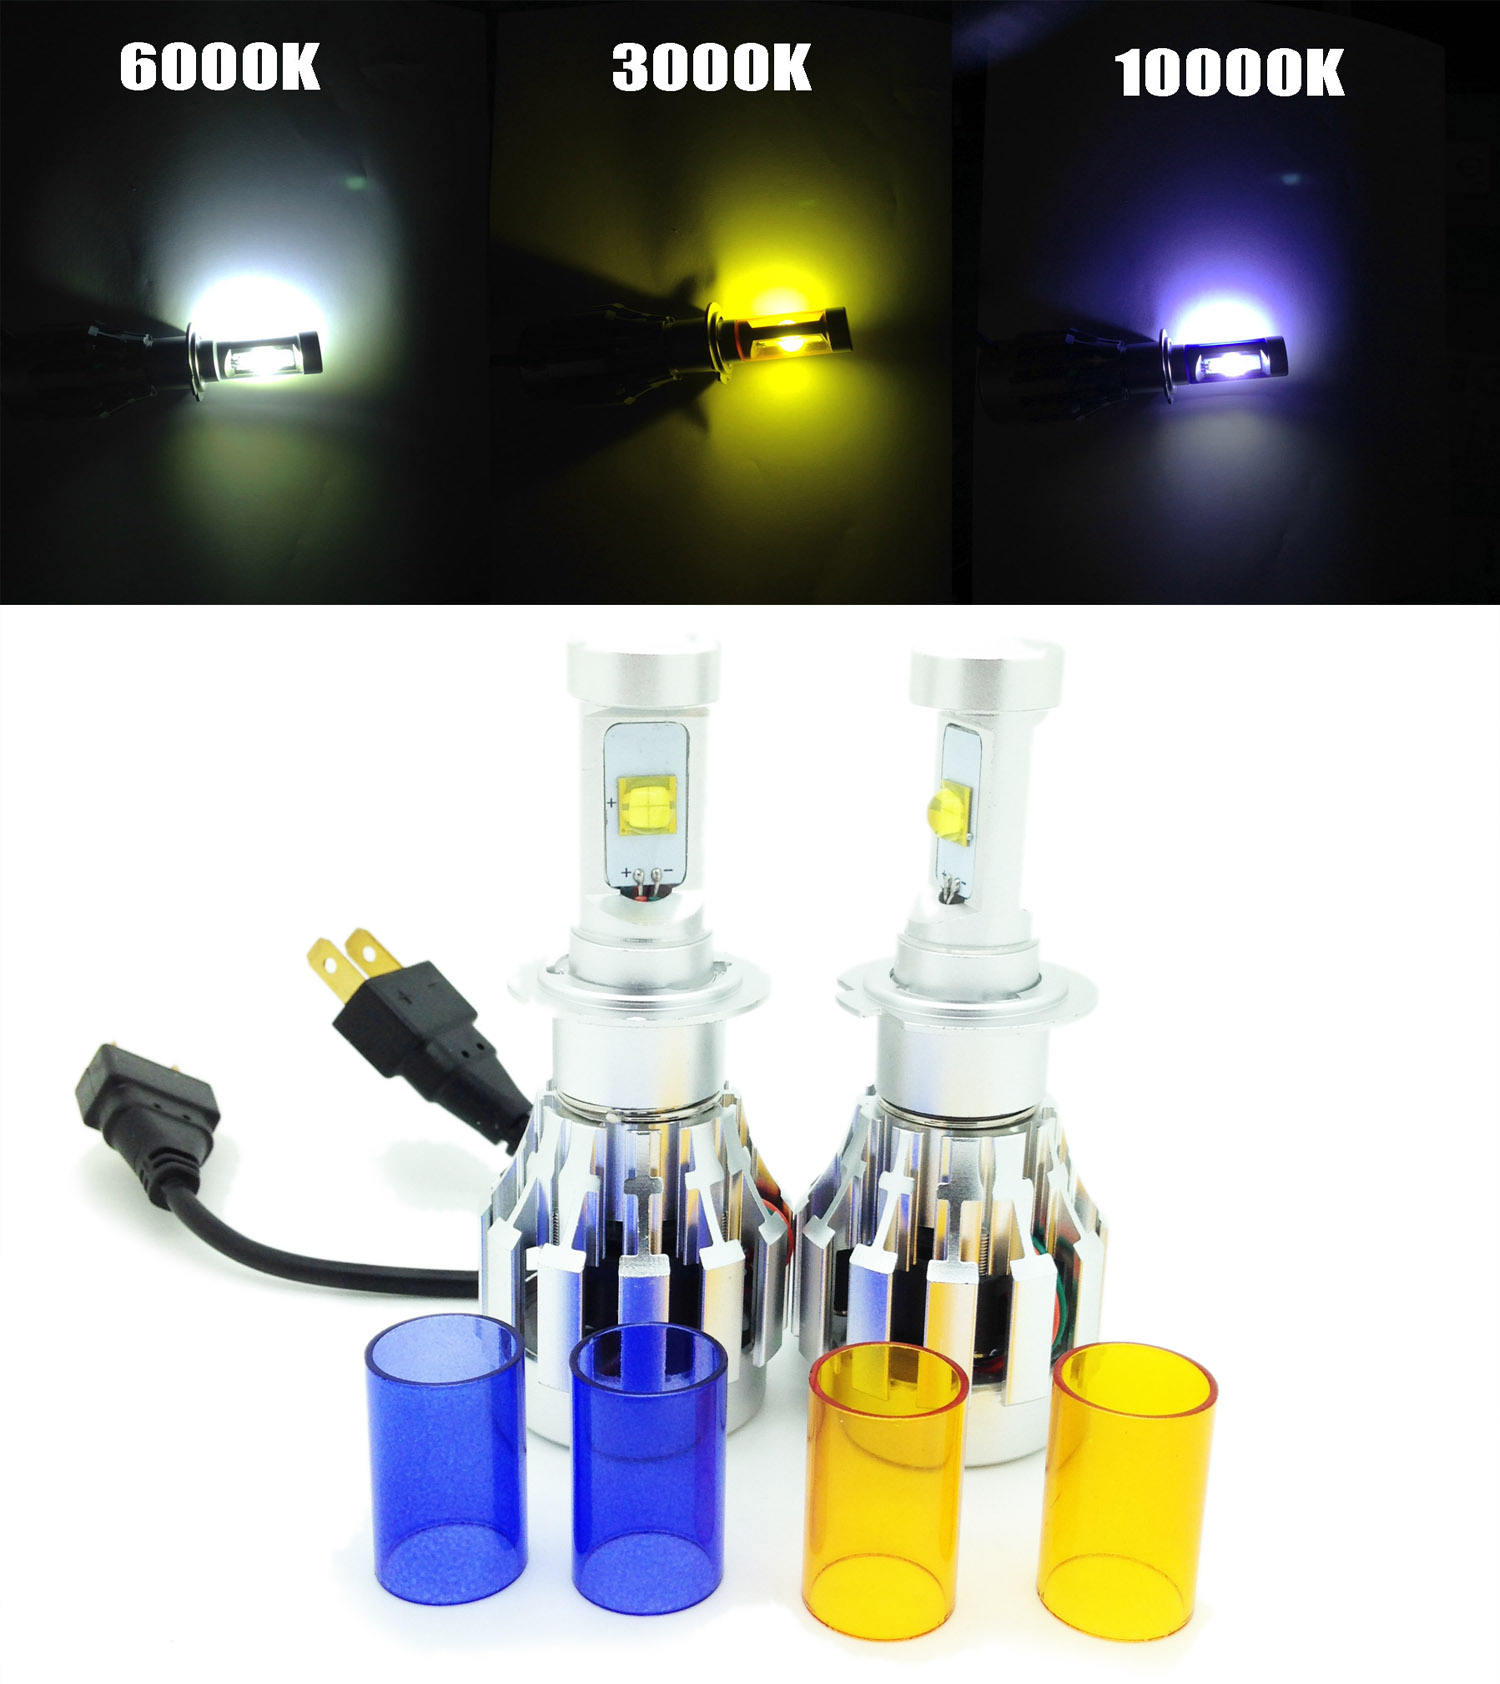 h7 cree led headlight bulbs kit lamp spare part 4000lm canbus citroen ds3 2009 ebay. Black Bedroom Furniture Sets. Home Design Ideas